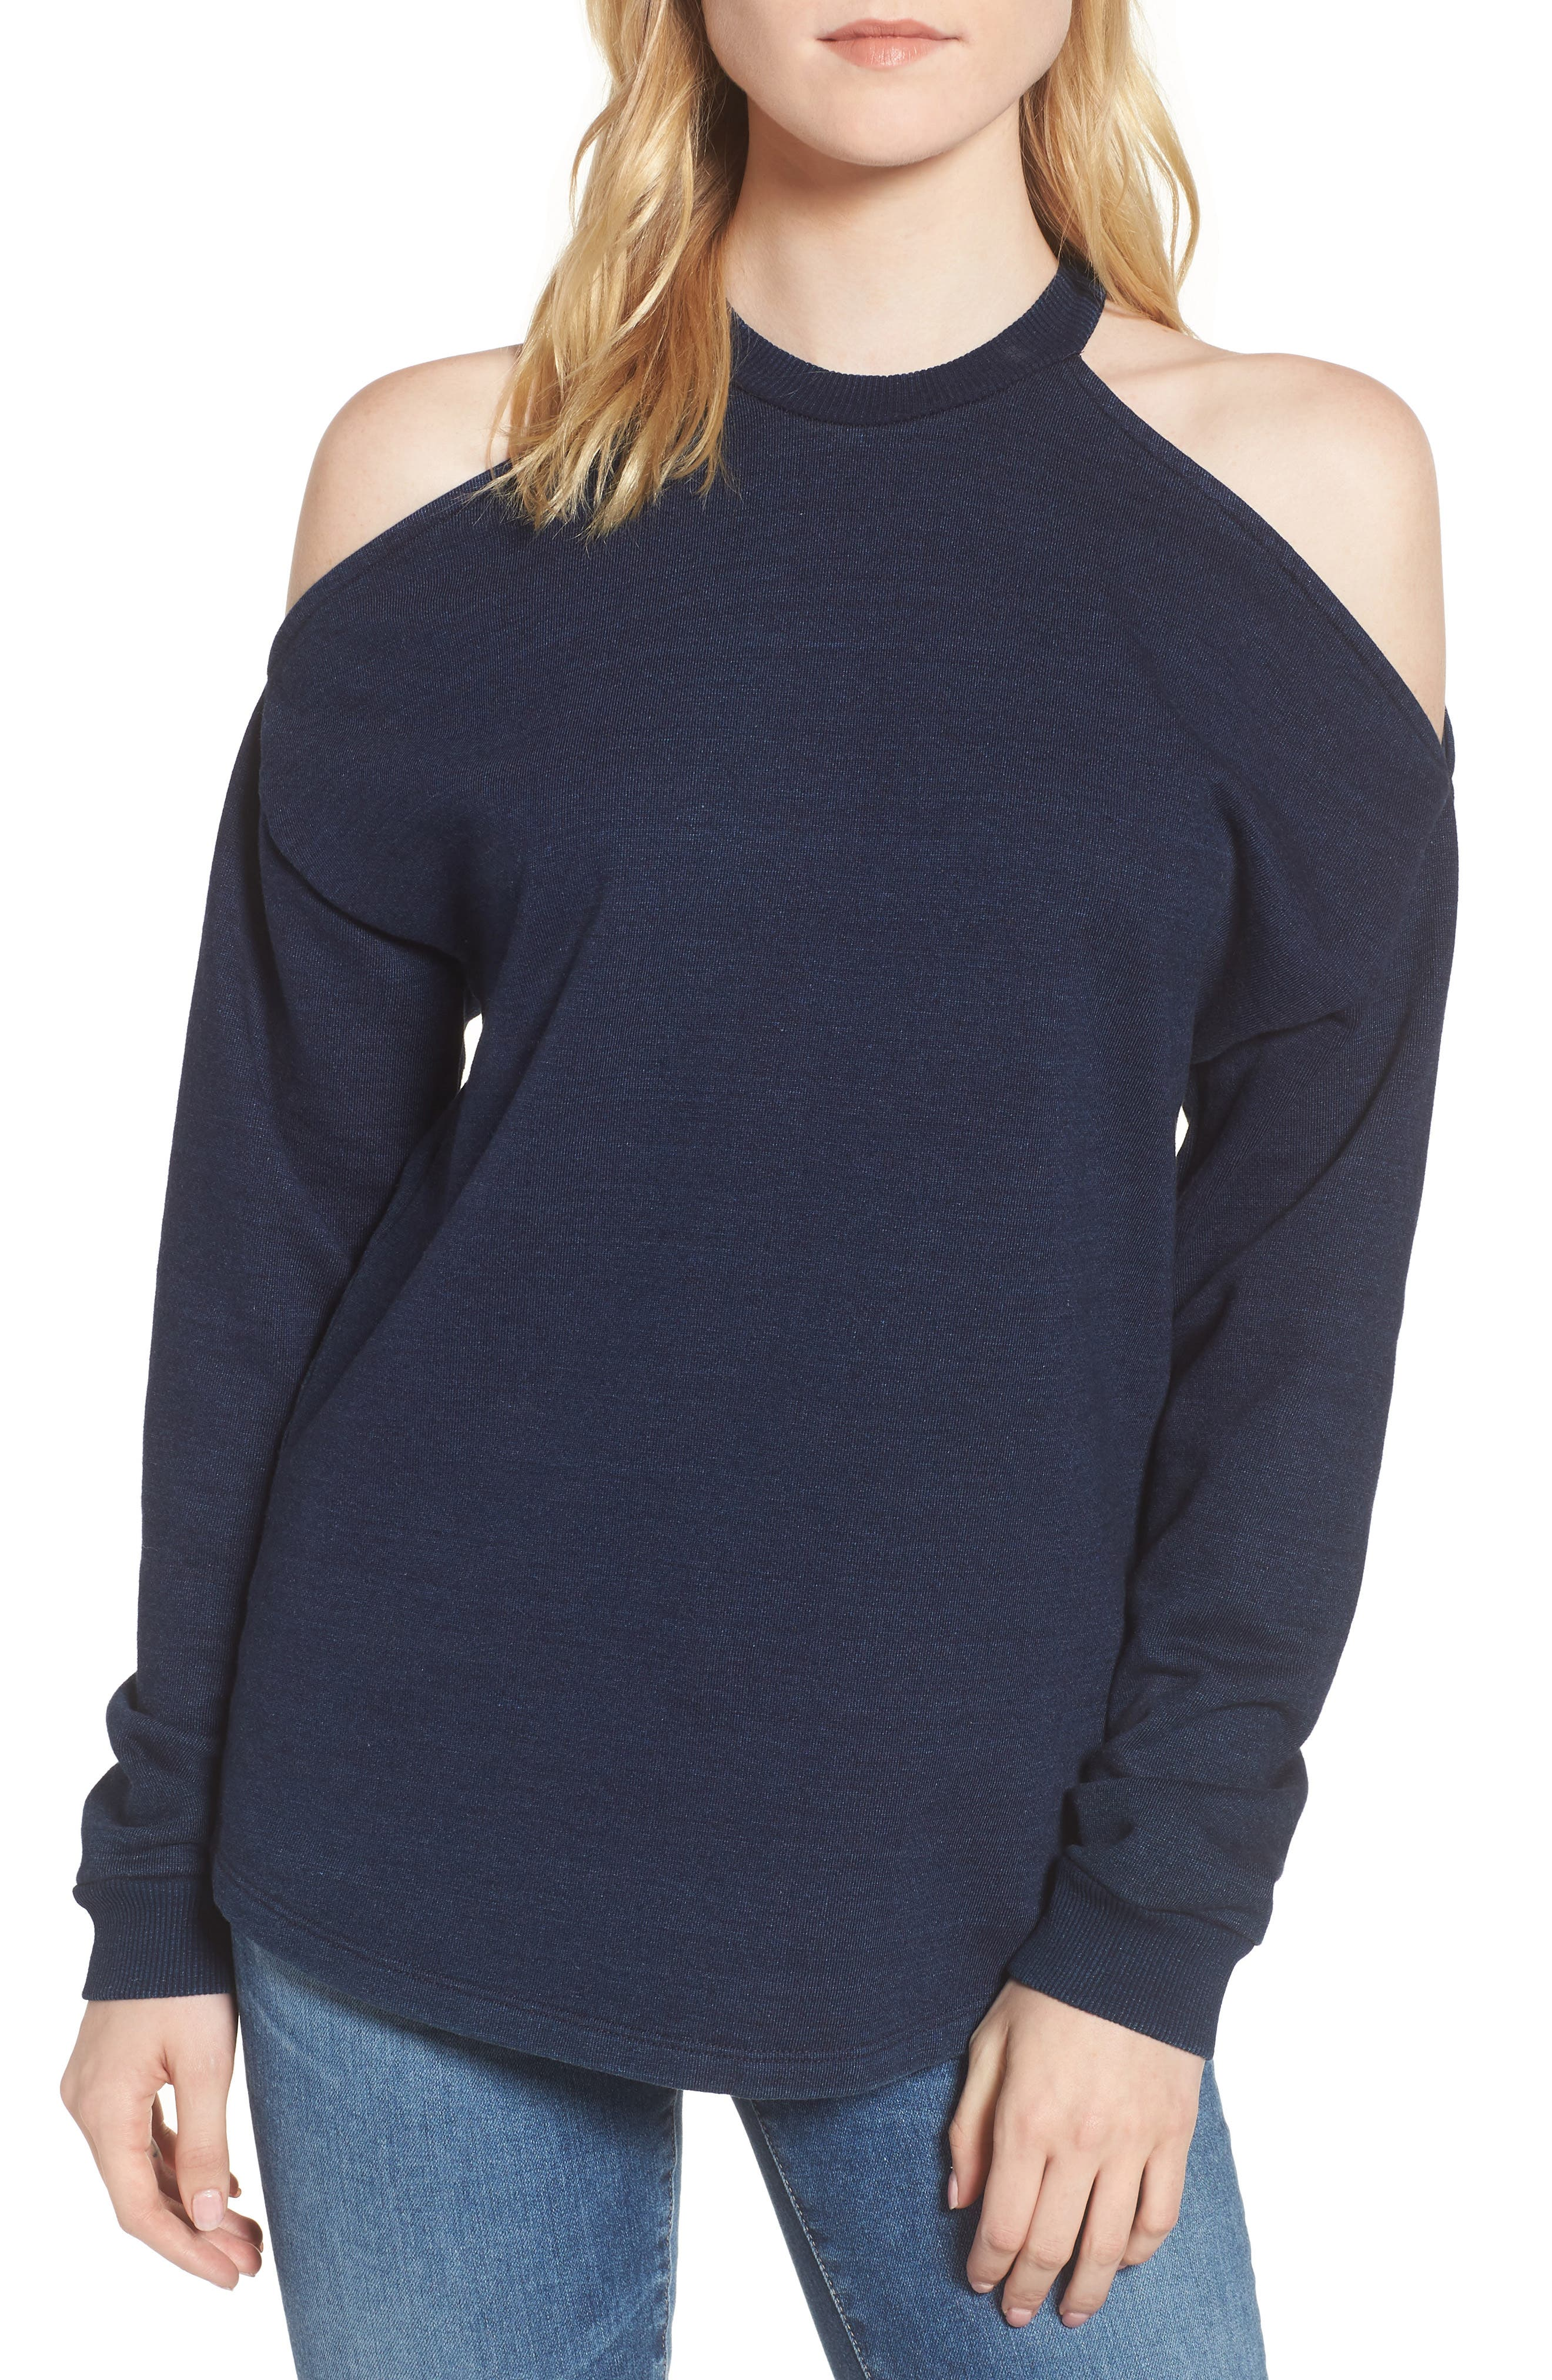 Gizi Cold Shoulder Sweatshirt,                         Main,                         color, Blue River